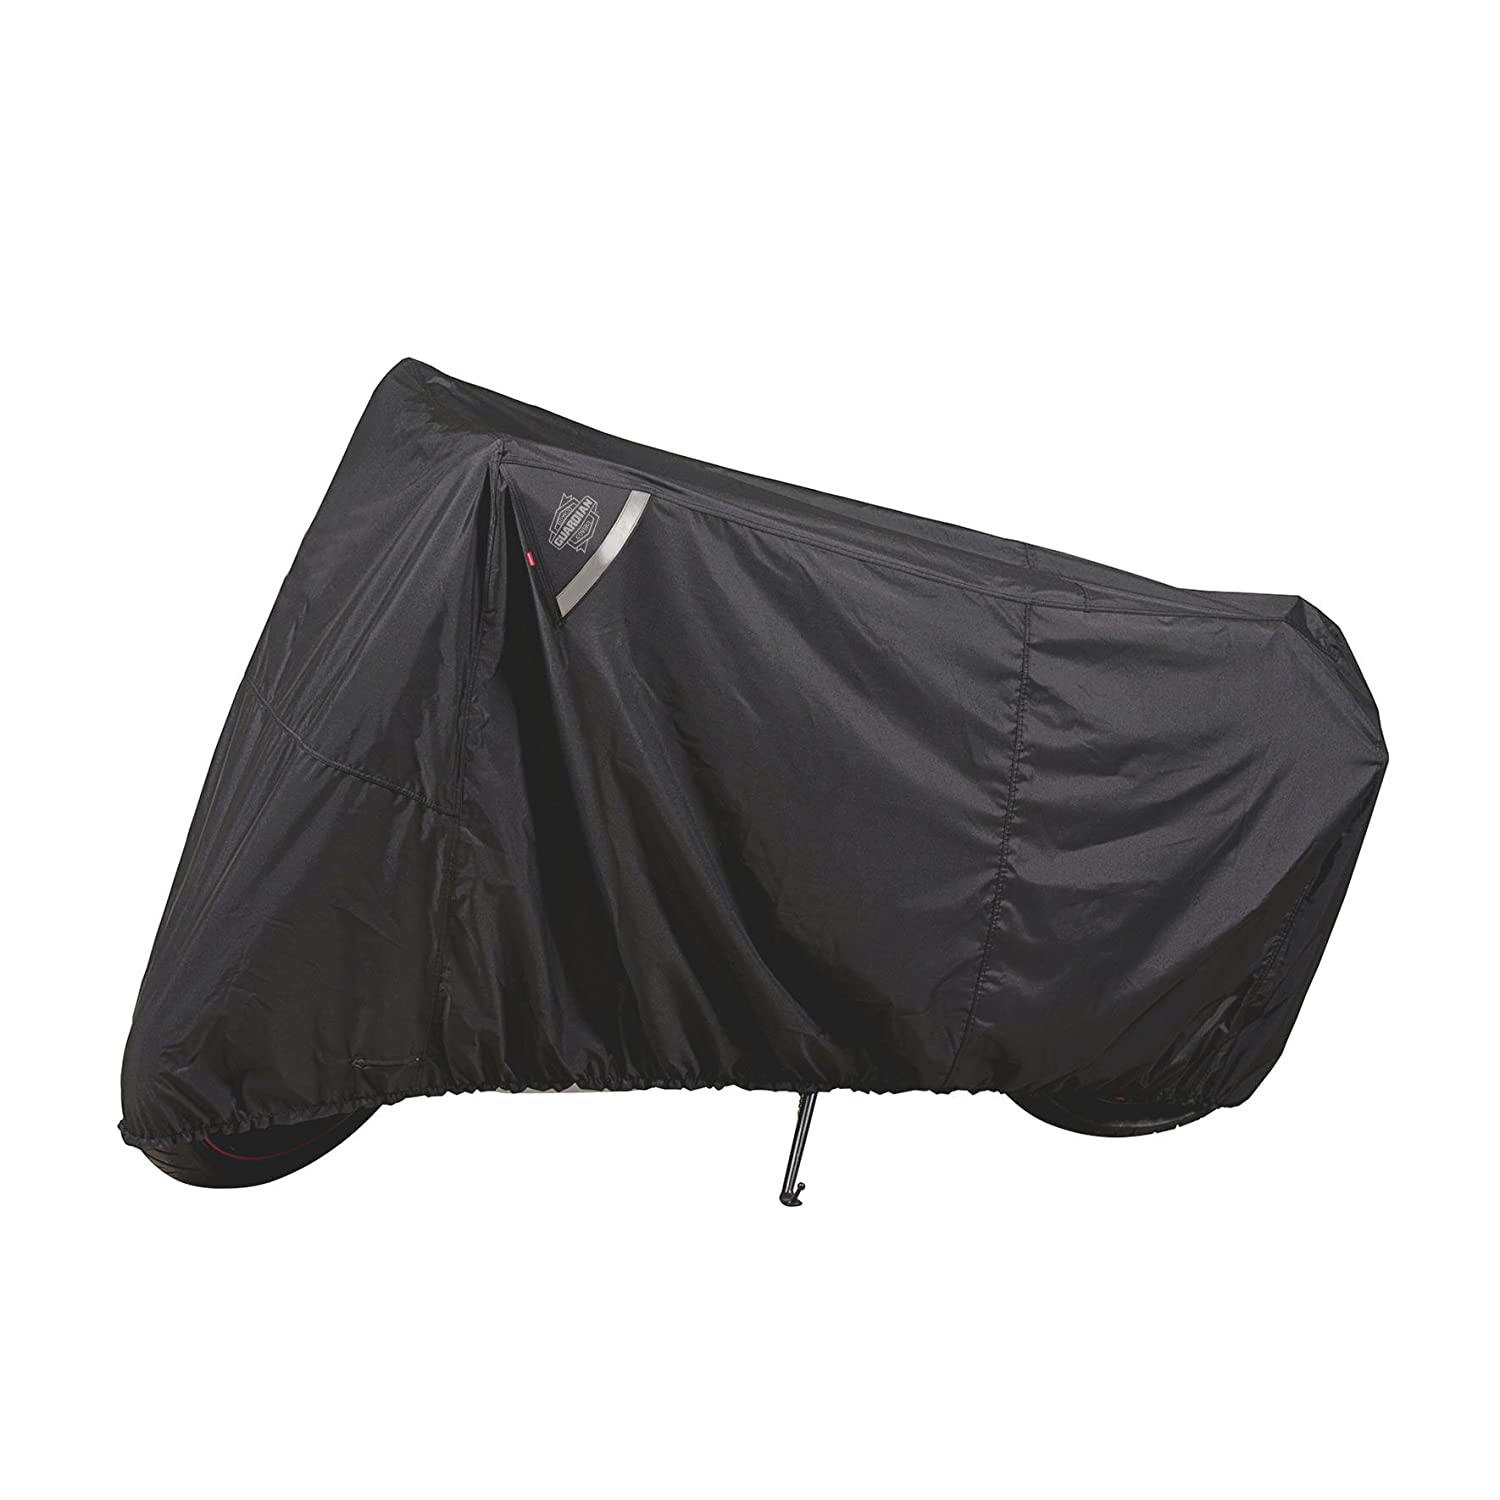 Dowco Guardian 50124-00 Weatherall Plus Indoor/Outdoor Waterproof Motorcycle Cover